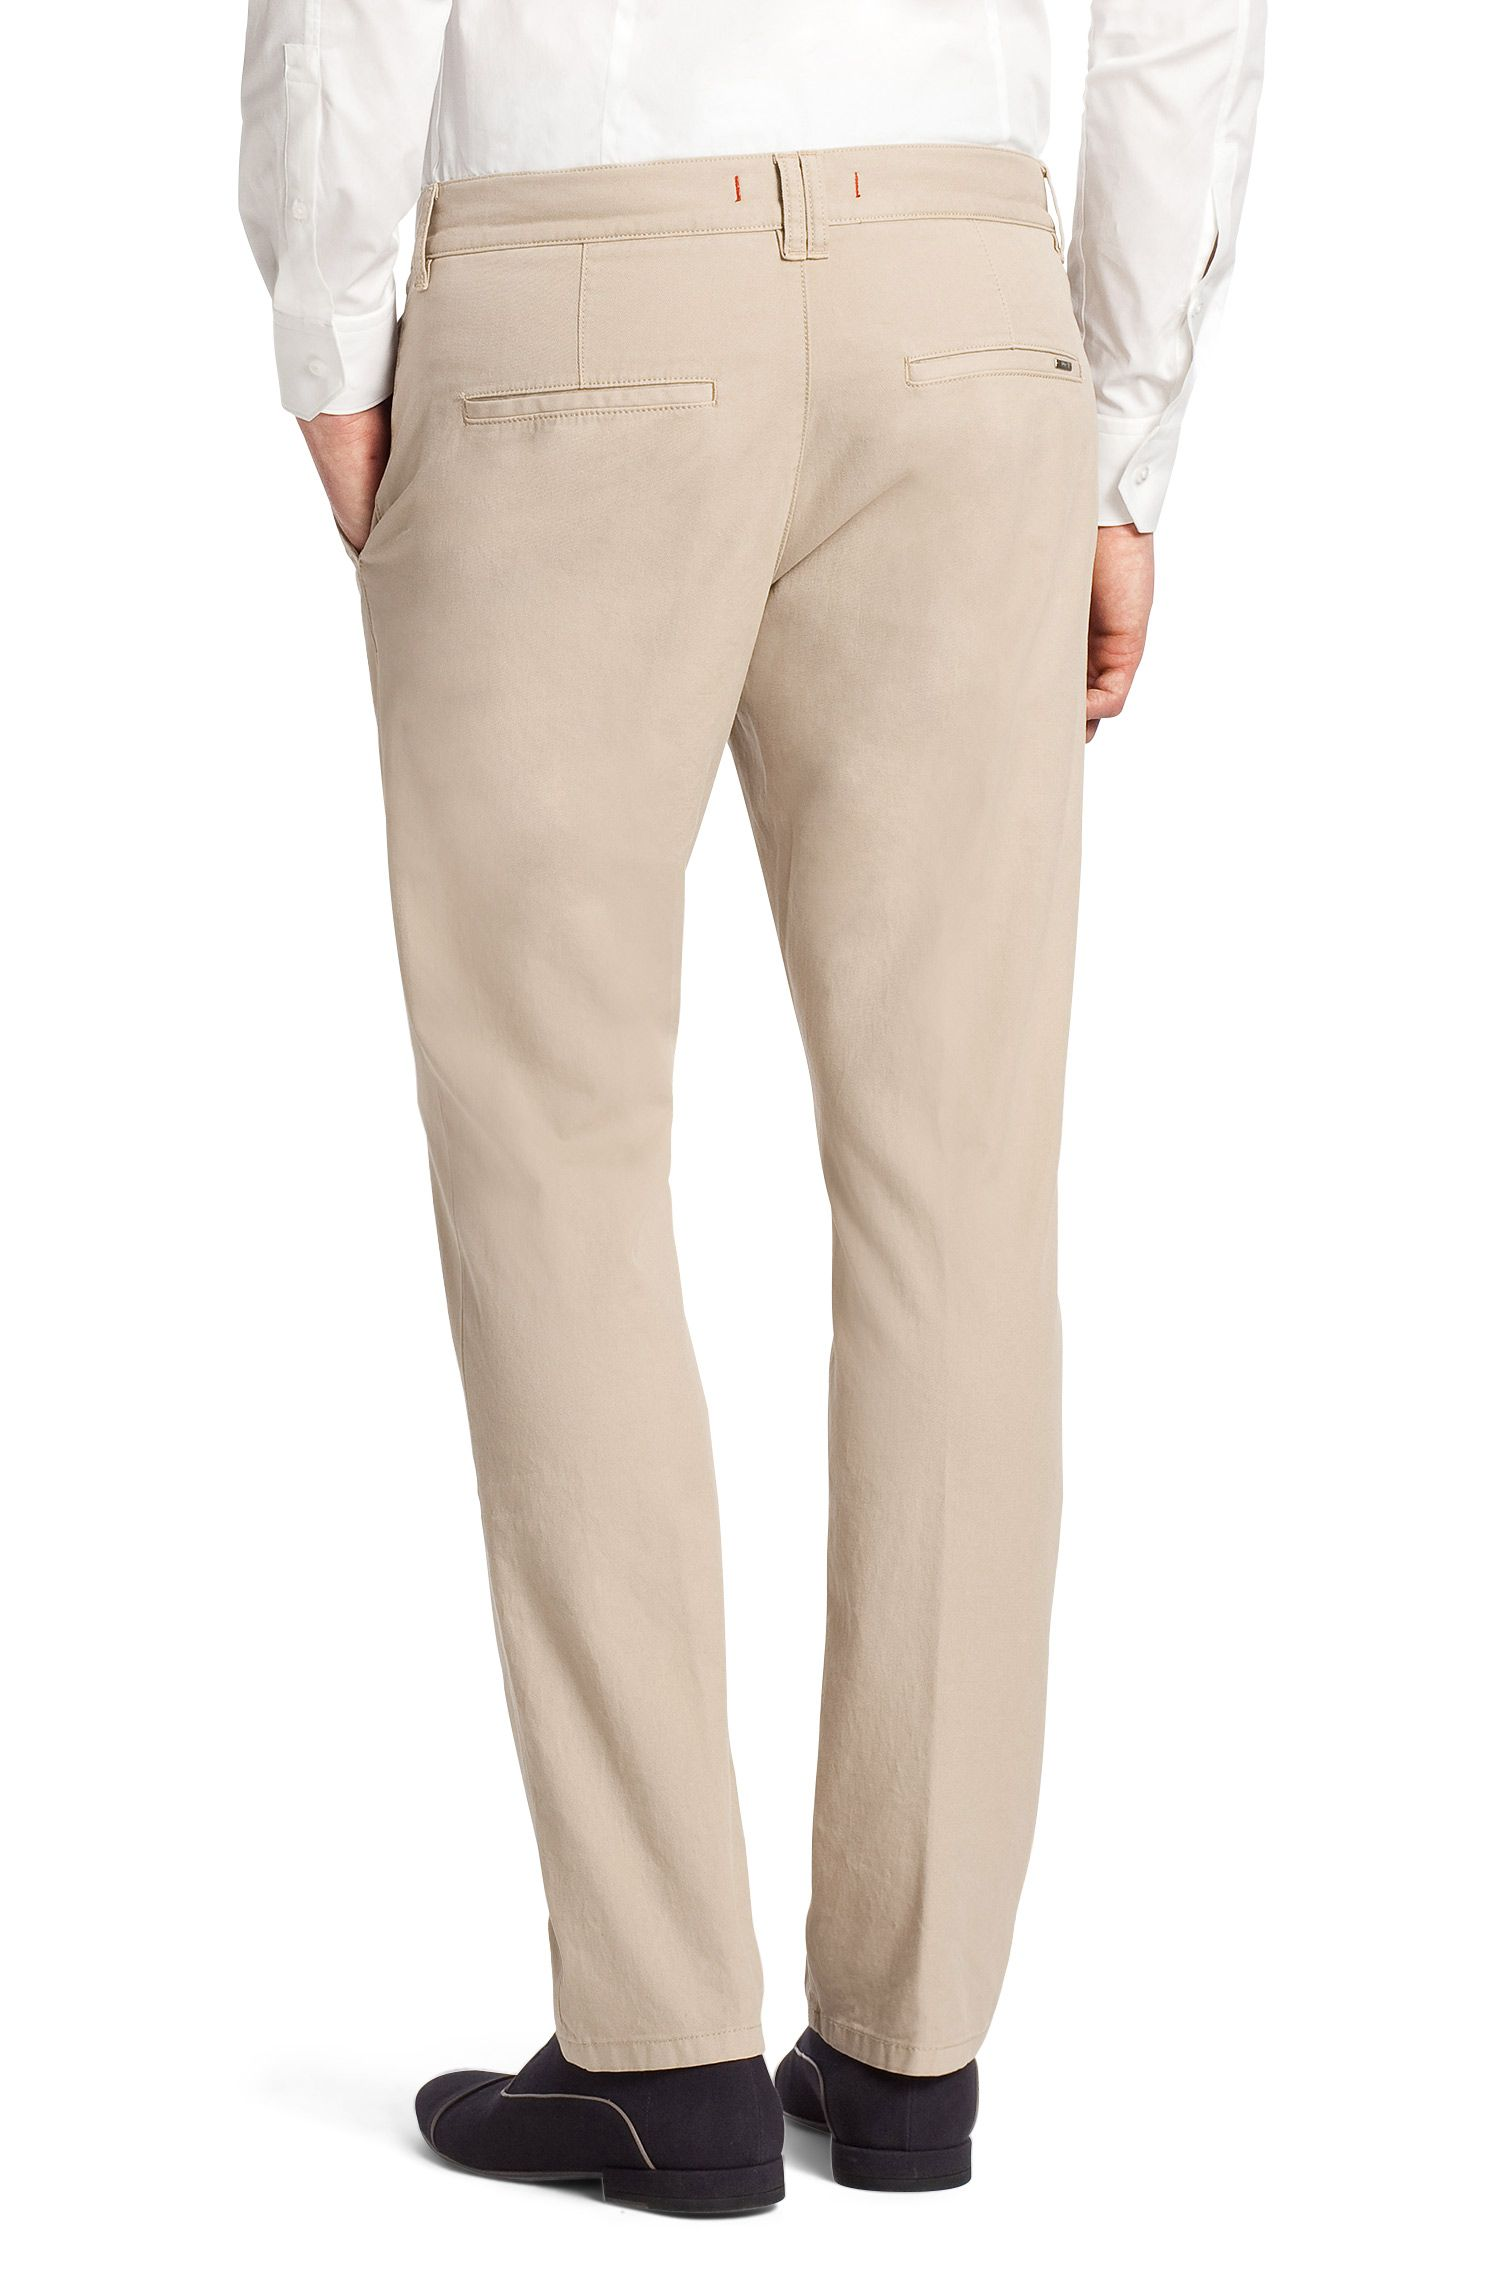 Pantalon chino en coton stretch, HUGO 15